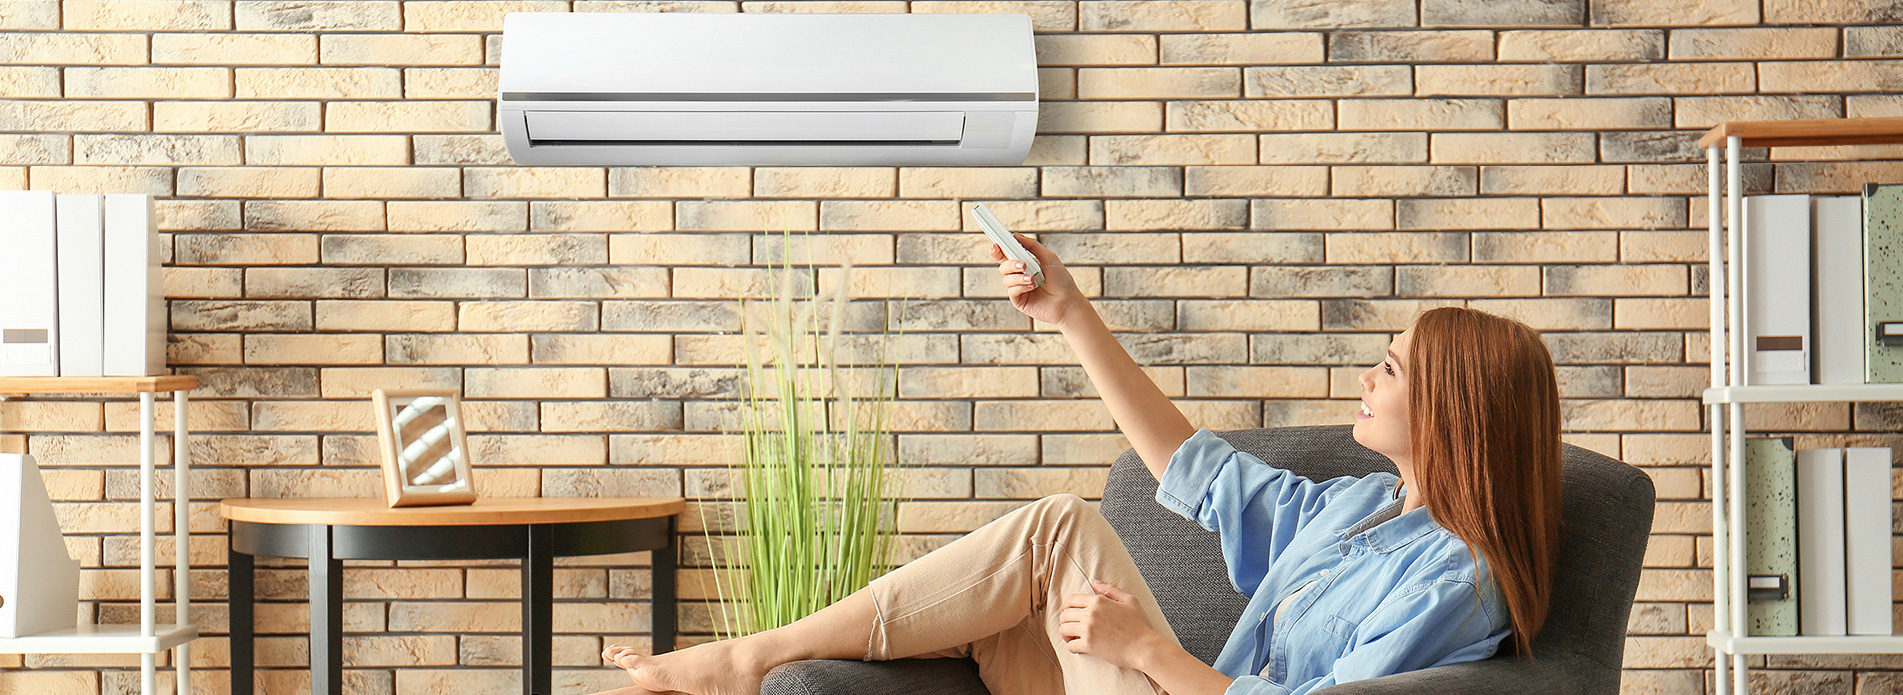 Woman enjoying an ac system in her living room